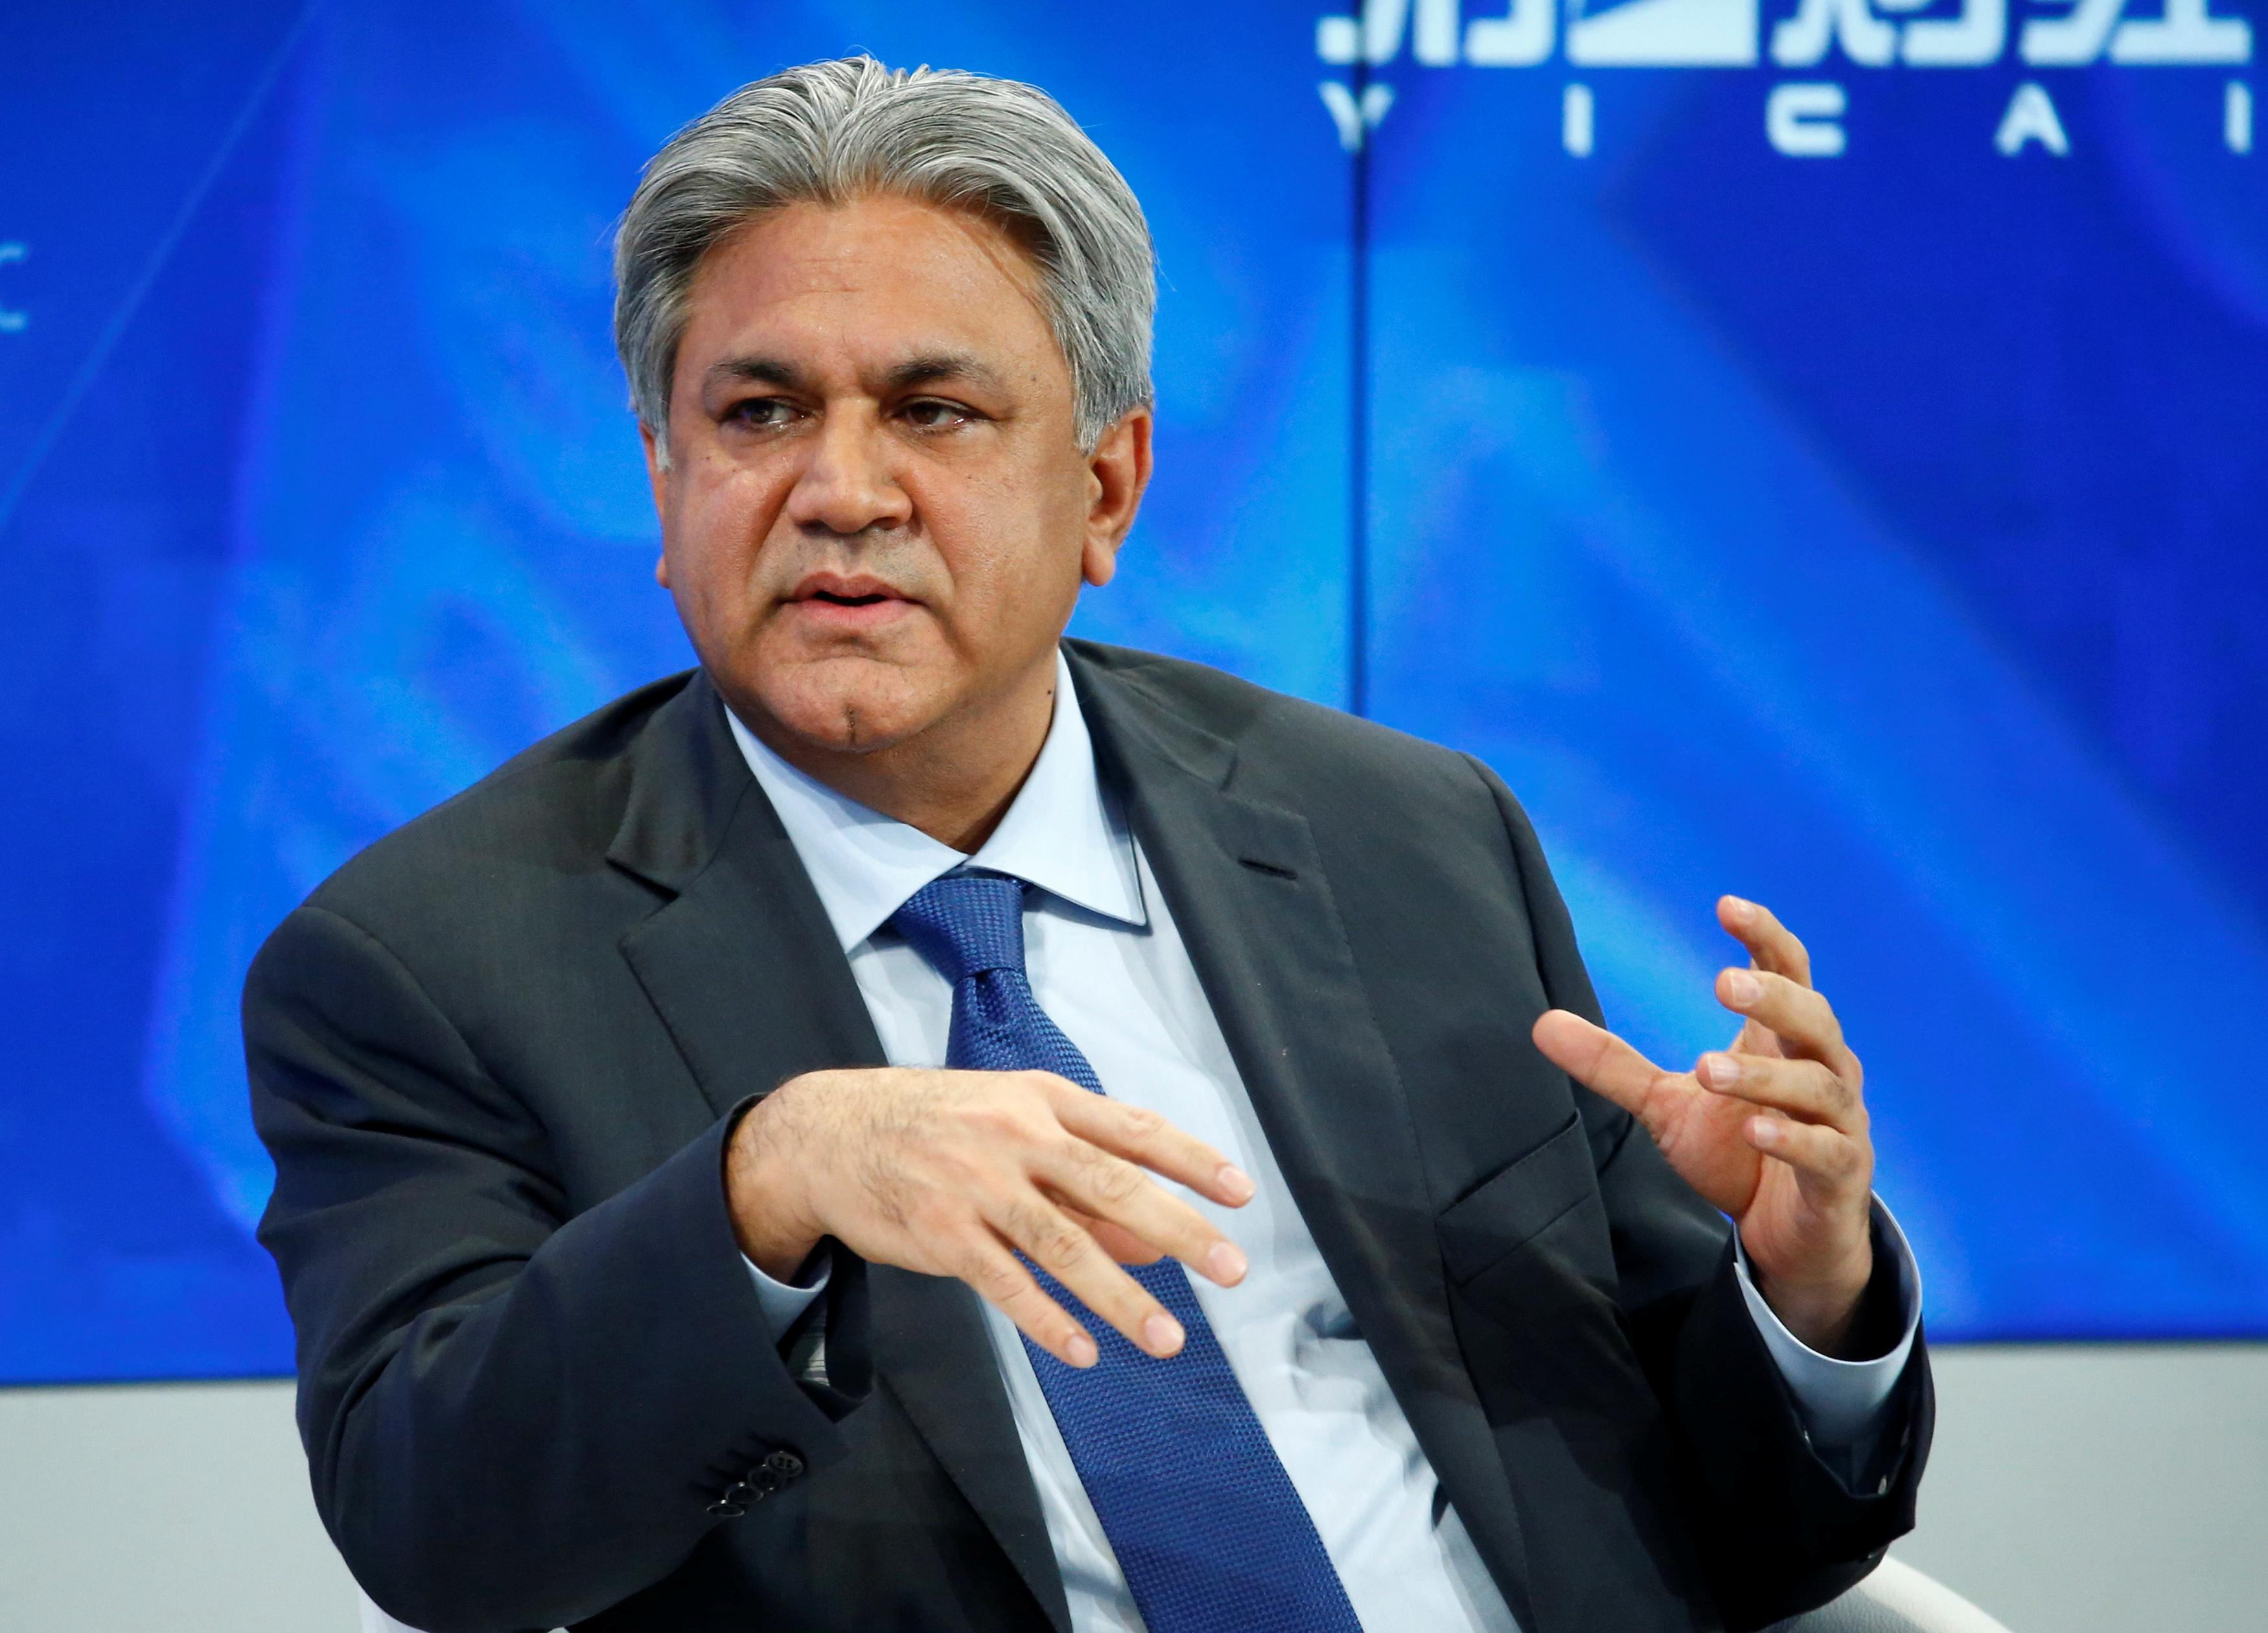 Abraaj founder released from custody after $19 million bail payment